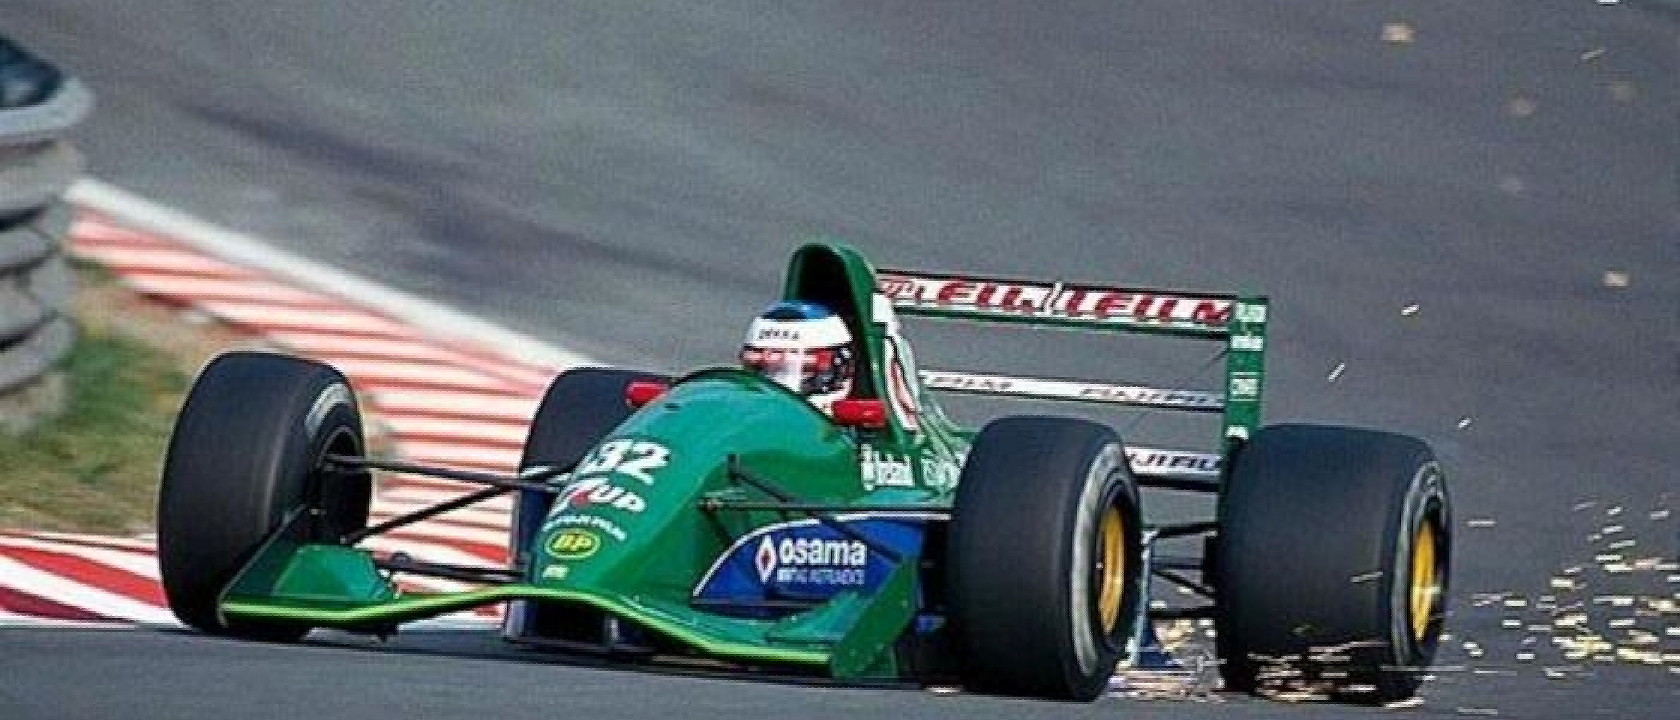 schumacher_spa91_7up-1680x720